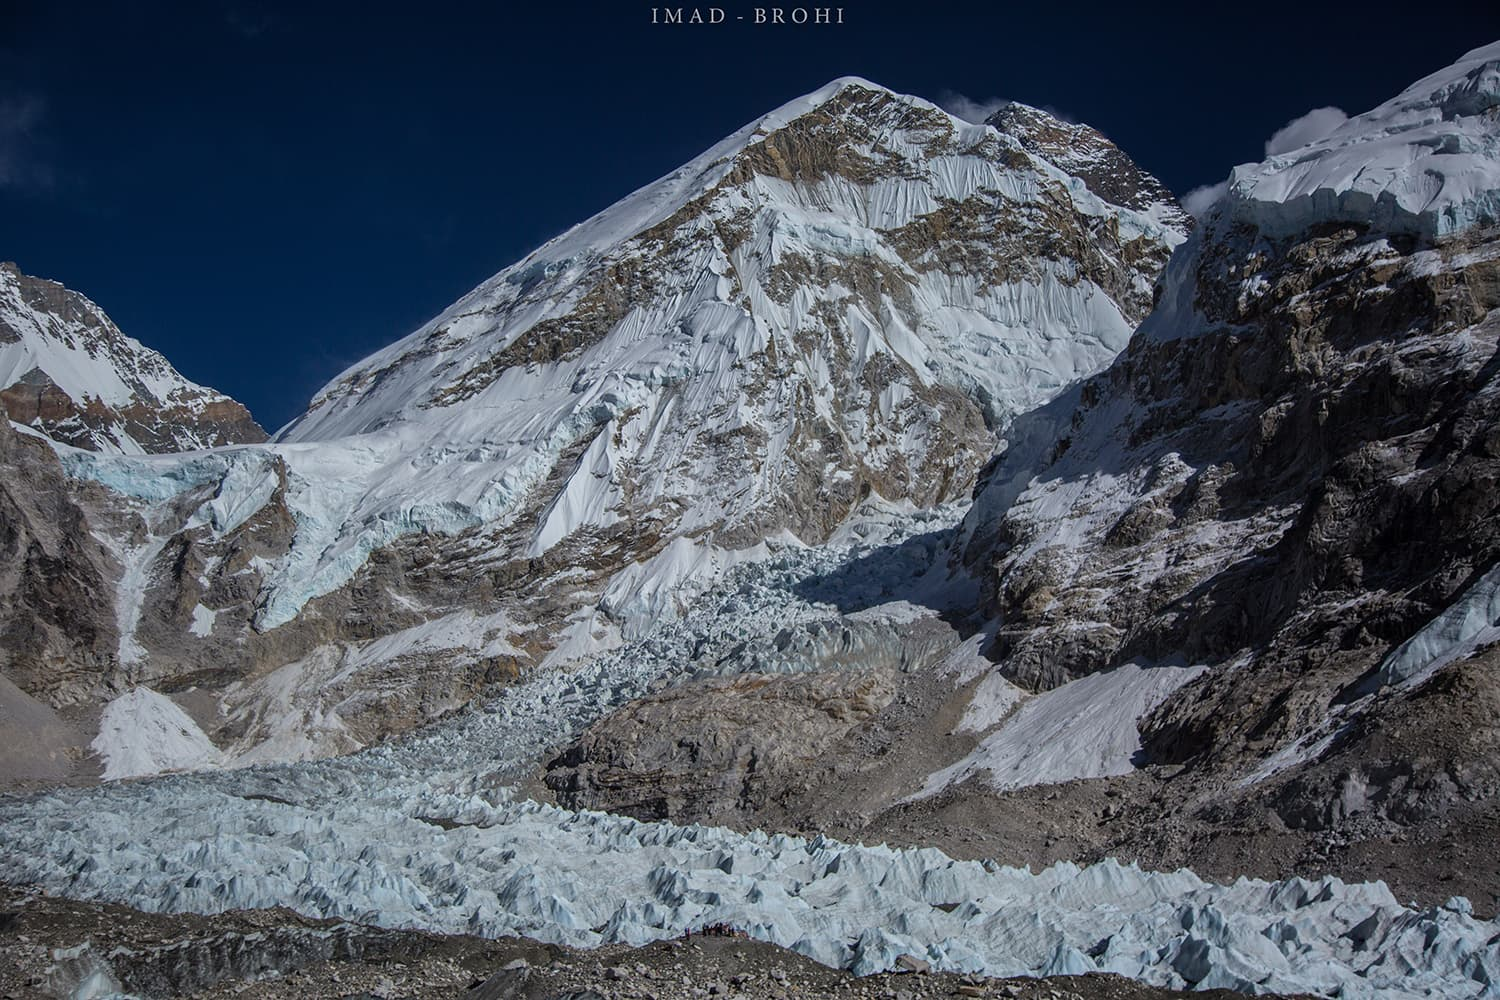 Day 9: People gather at Mount Everest Base Camp along the side of Khumbu Glacier. The glacier between Lho La and Nuptse is the Khumbu Icefall, the first step and a daunting one for those climbing Mount Everest.